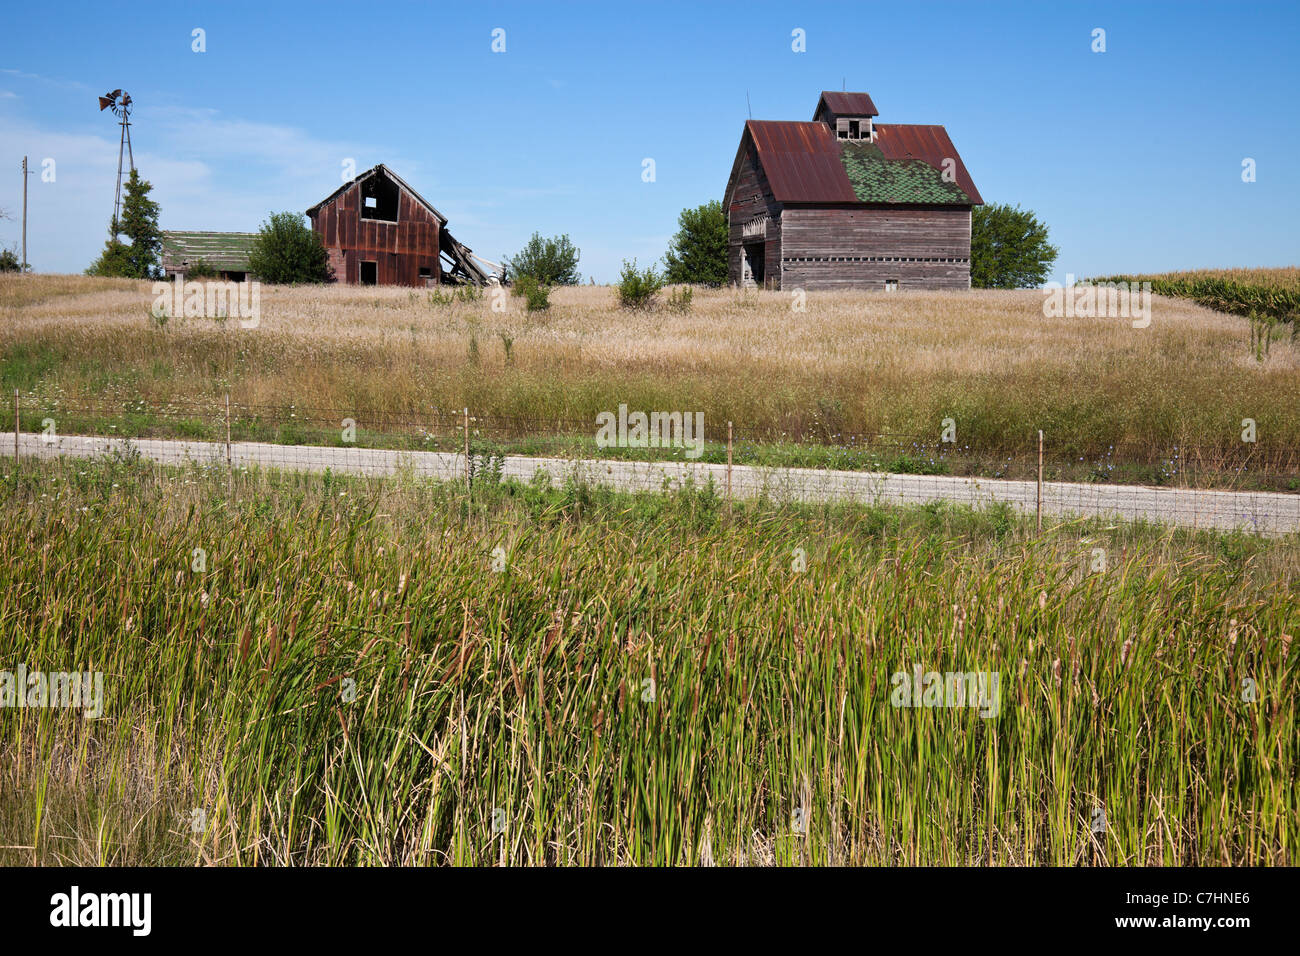 Old farm buildings in the middle of field - Stock Image